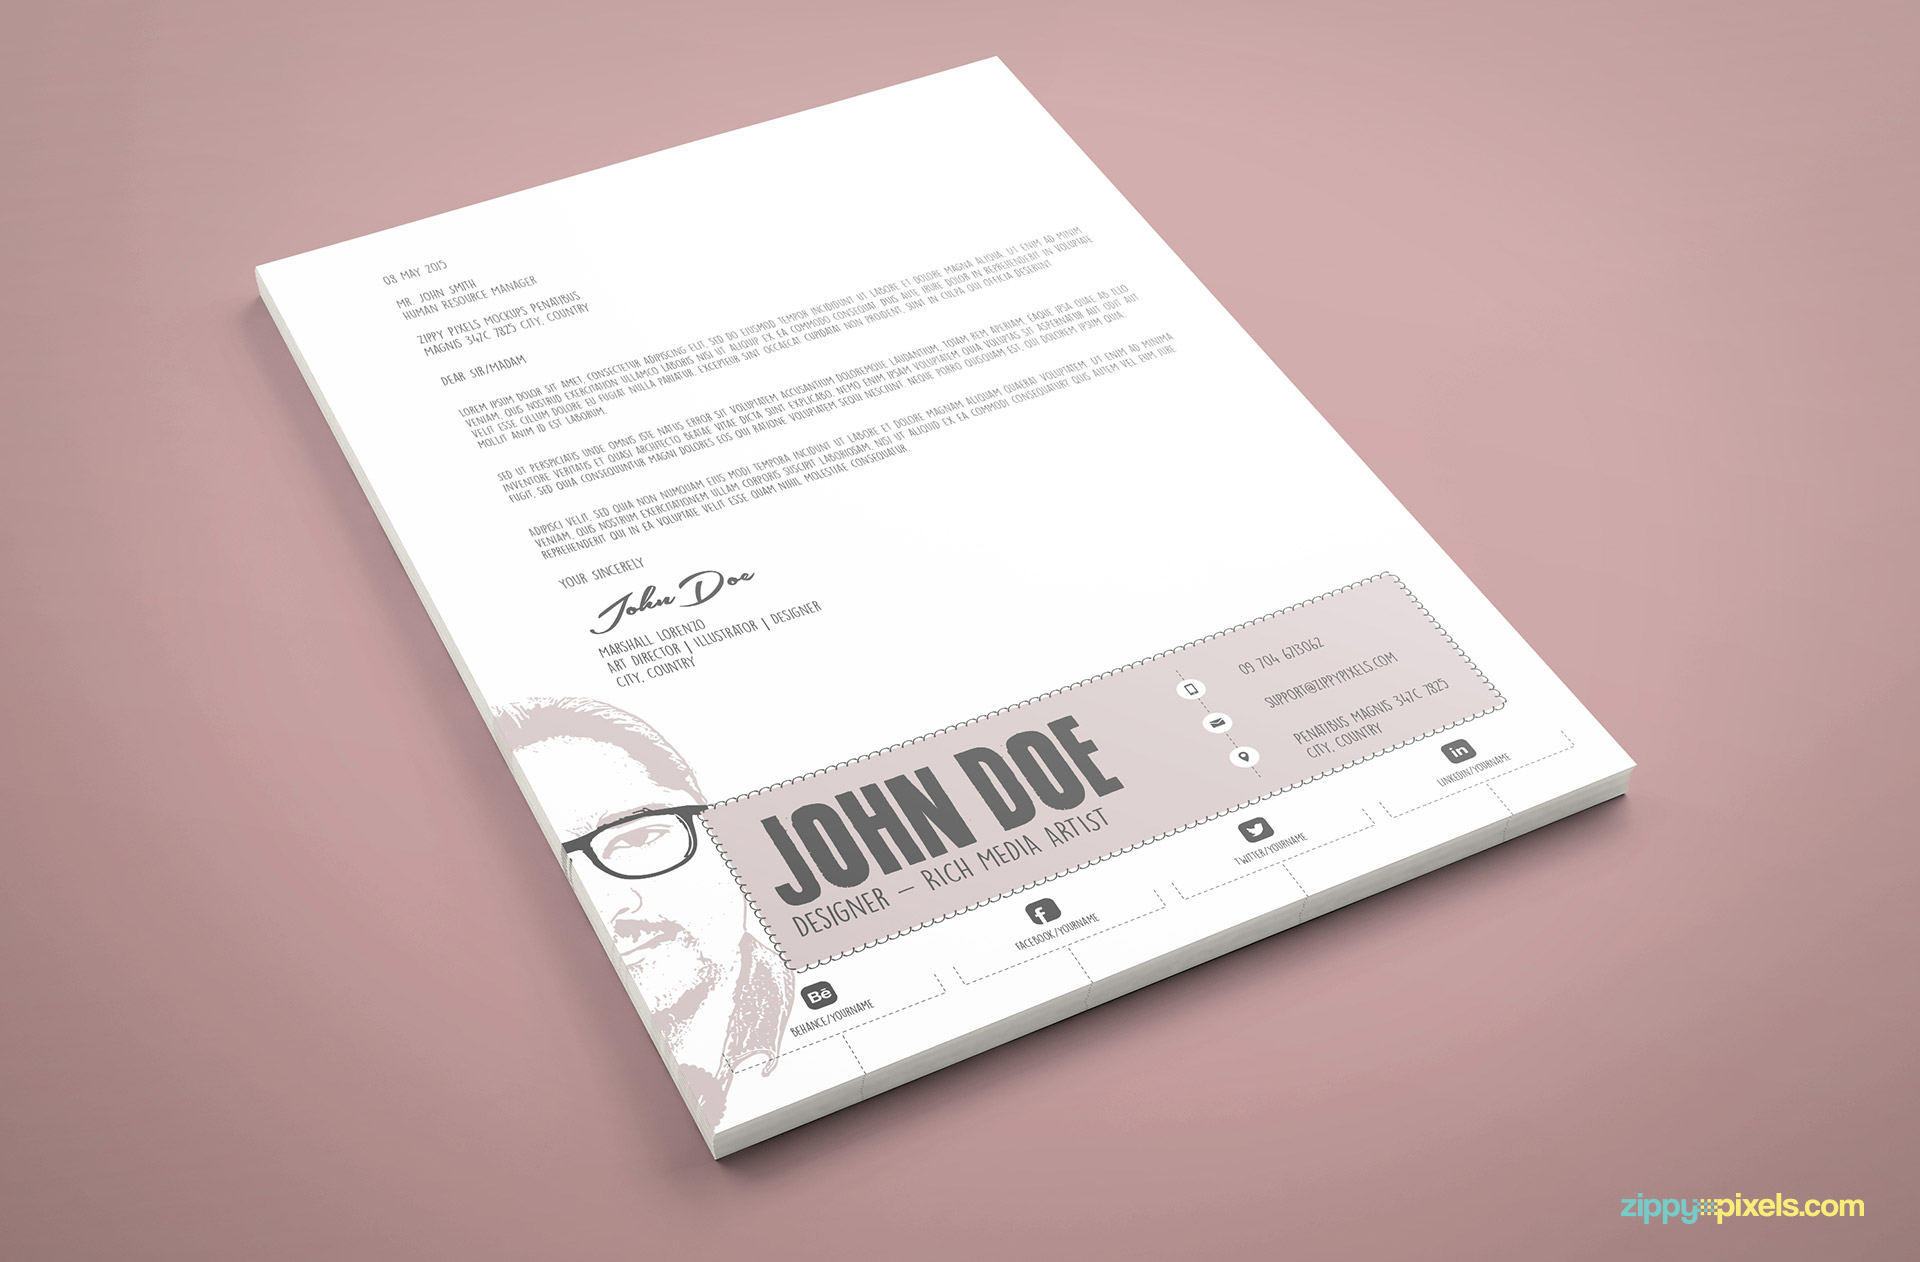 Designer Cover Letter PSD Template in Sketch Art Style